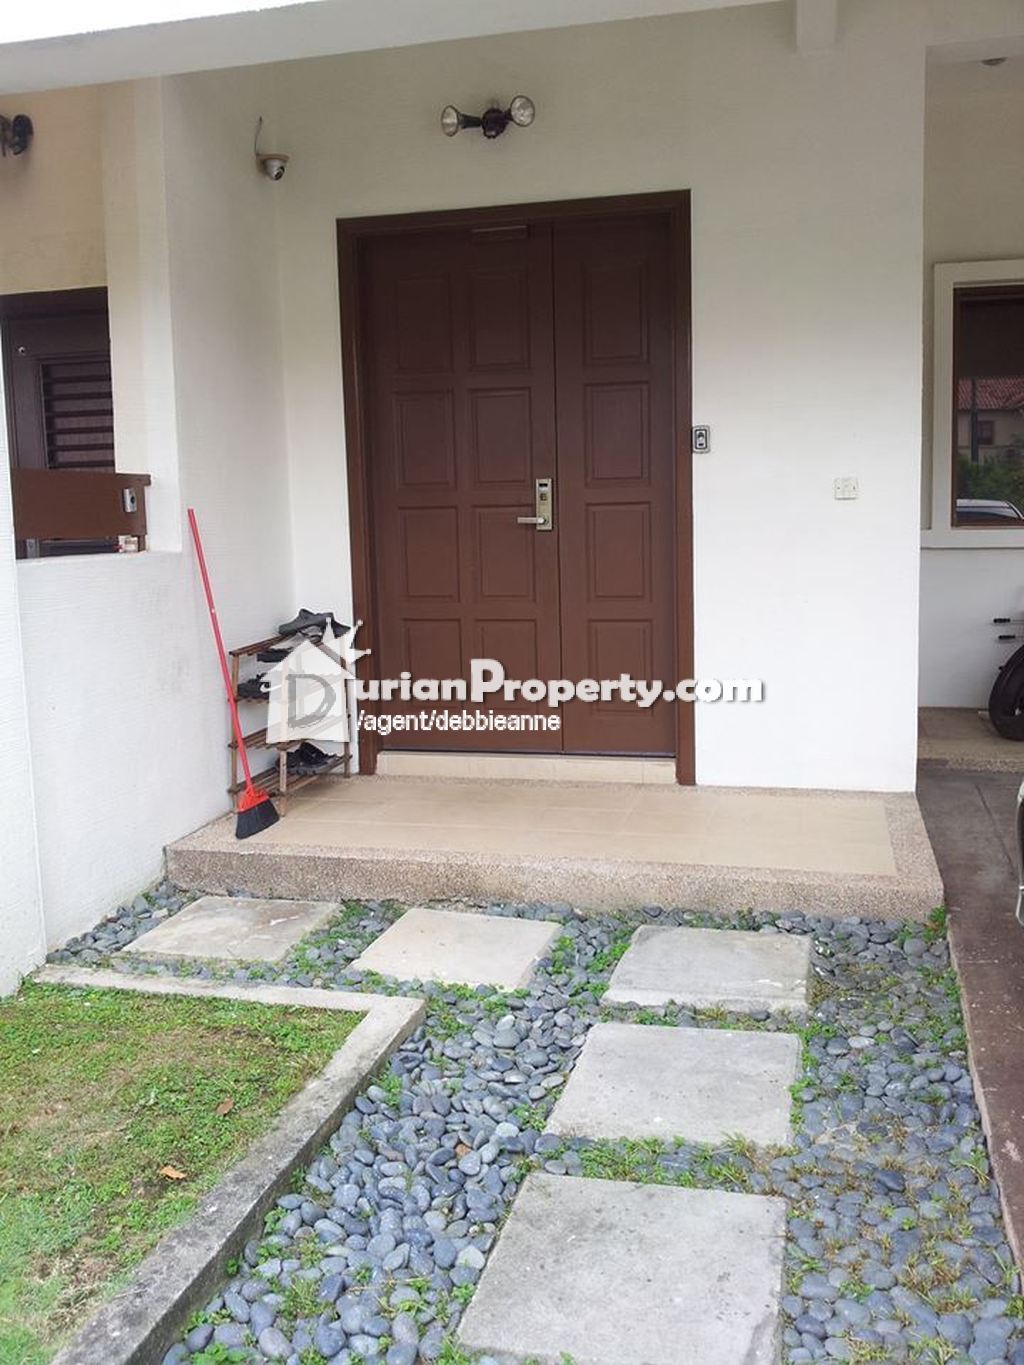 Terrace house for sale at lagenda 2 bukit jelutong for rm for Terrace house stream online